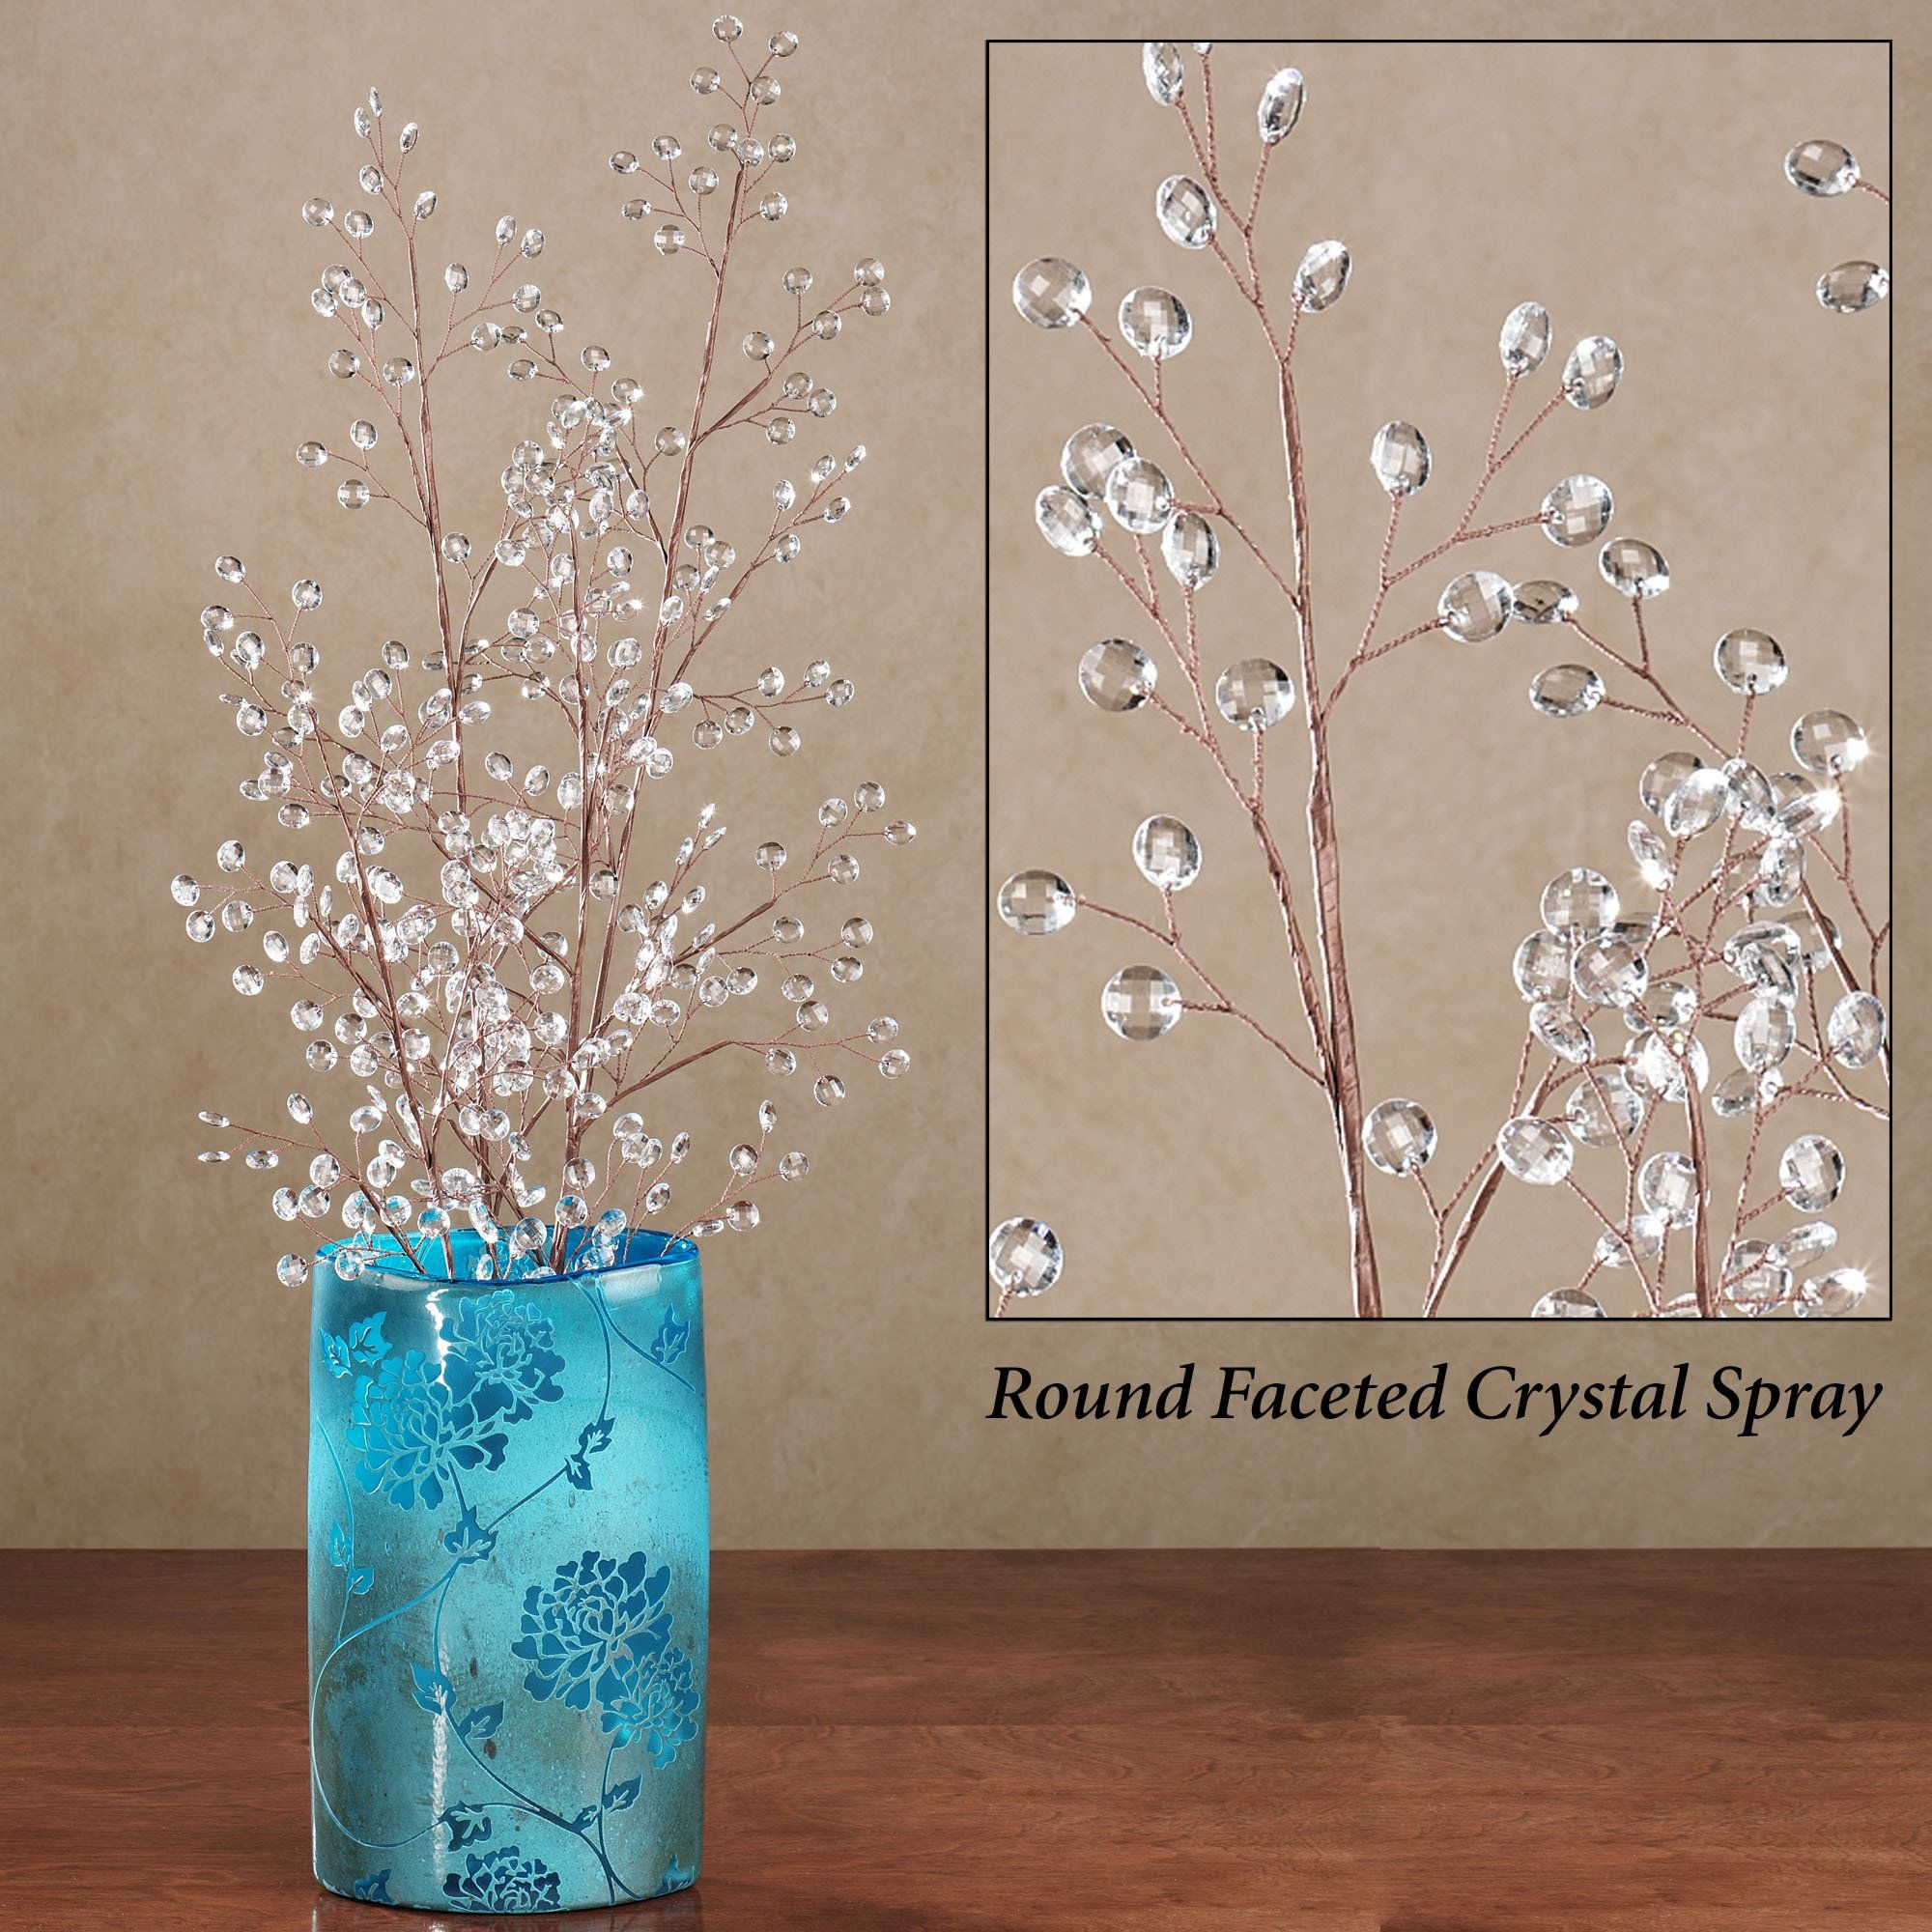 For a dynamic floral display complete your bouquet with the round for a dynamic floral display complete your bouquet with the round faceted crystal decorative spray accent has one stem with several offshoots and round reviewsmspy